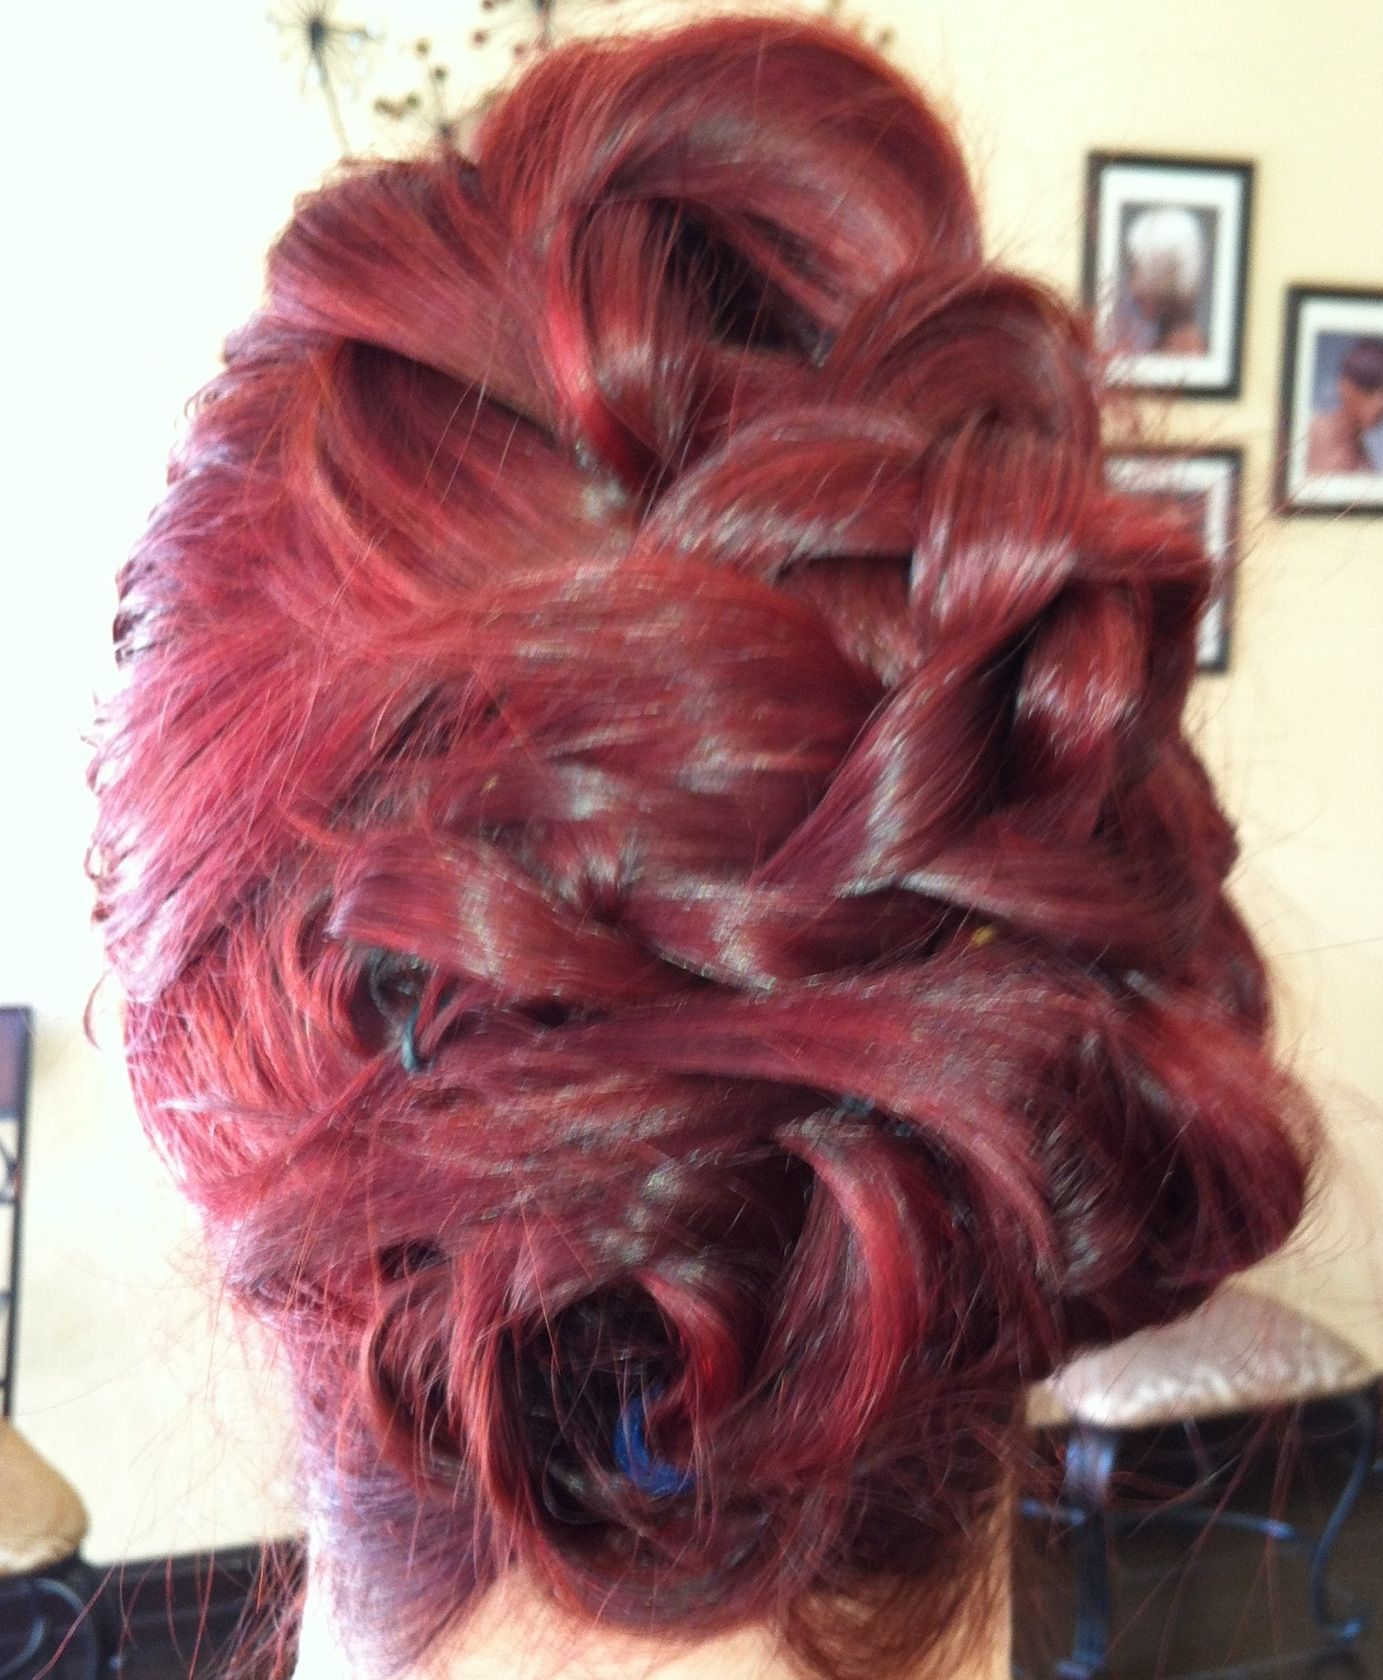 Diy Elegant Updos: 3 Side Sections, Braided Loosely, And Pinned